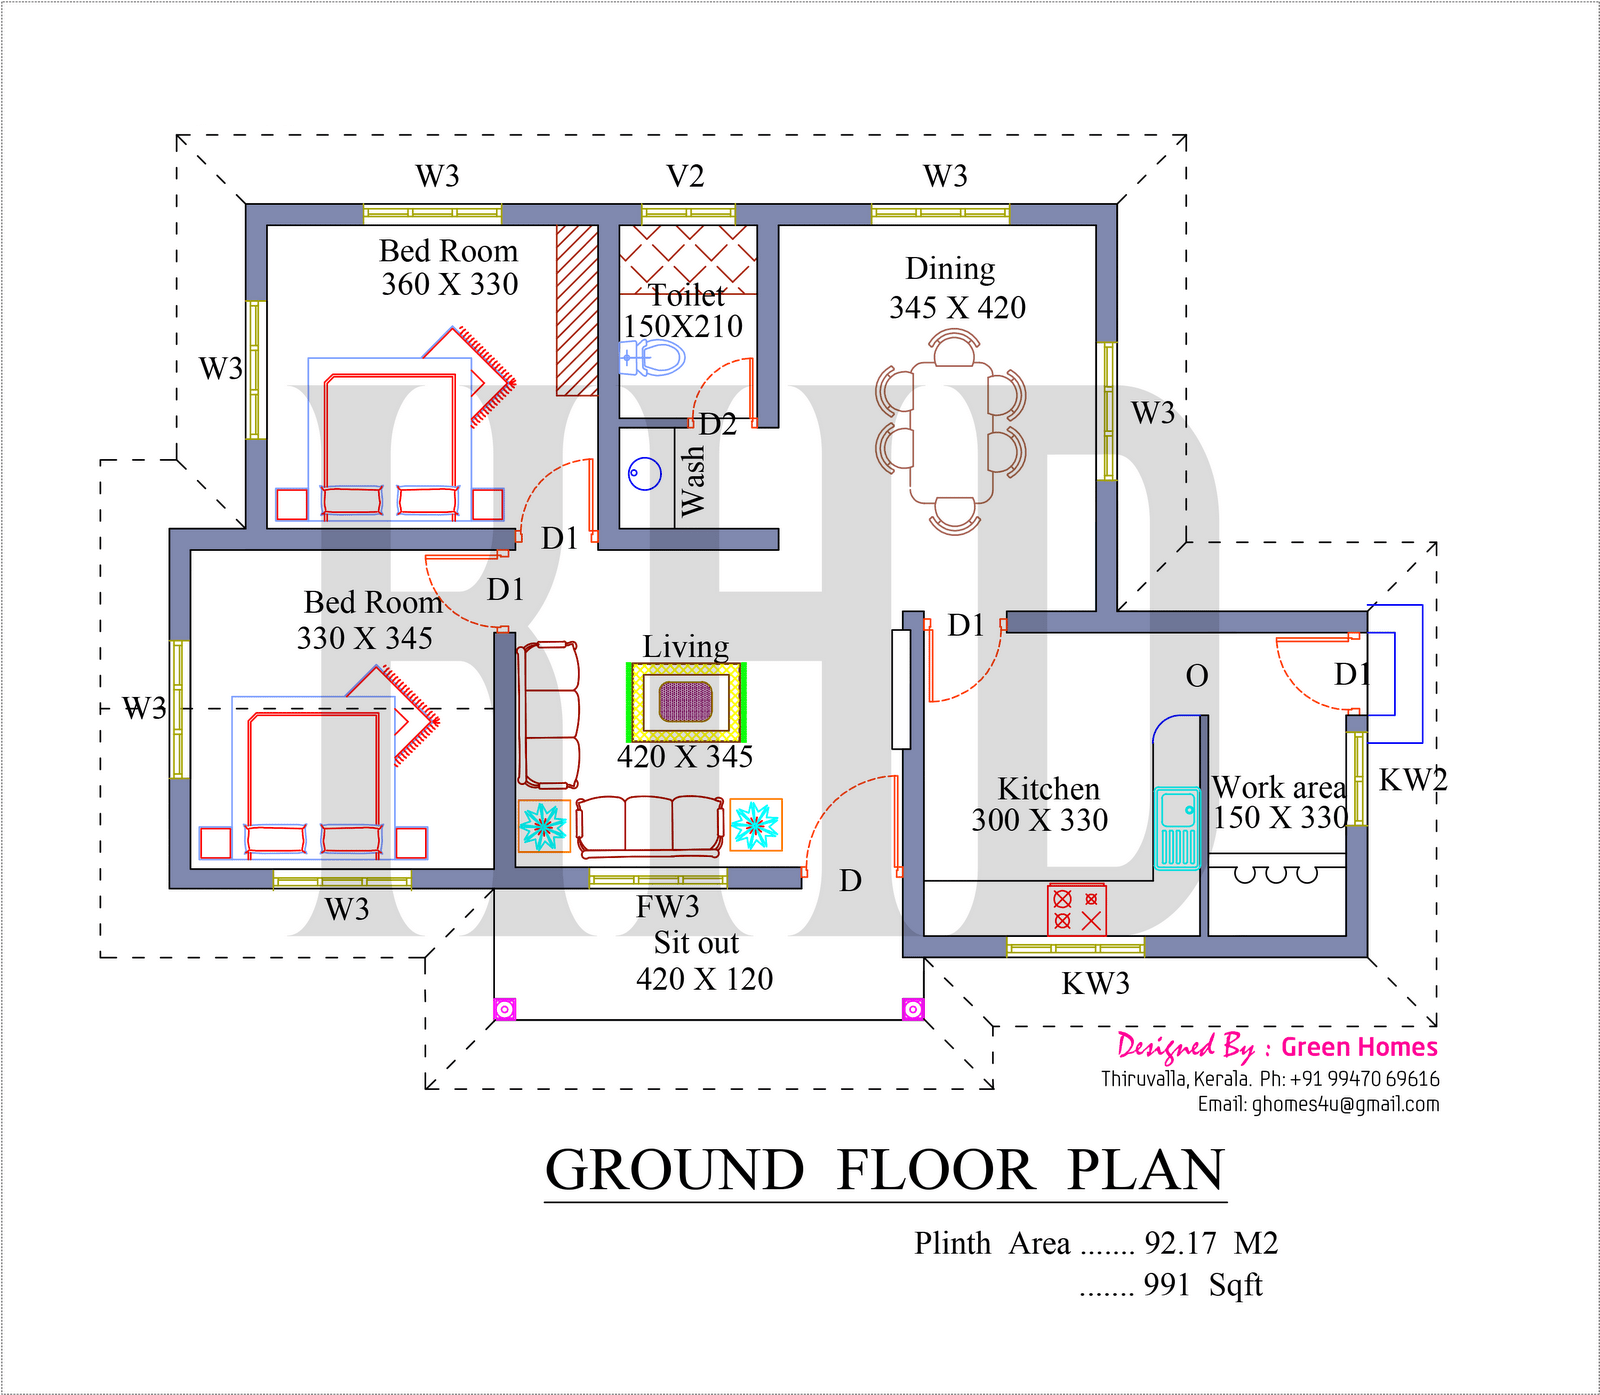 Low cost house in kerala with plan photos 991 sq ft khp for Kerala style house plans with cost